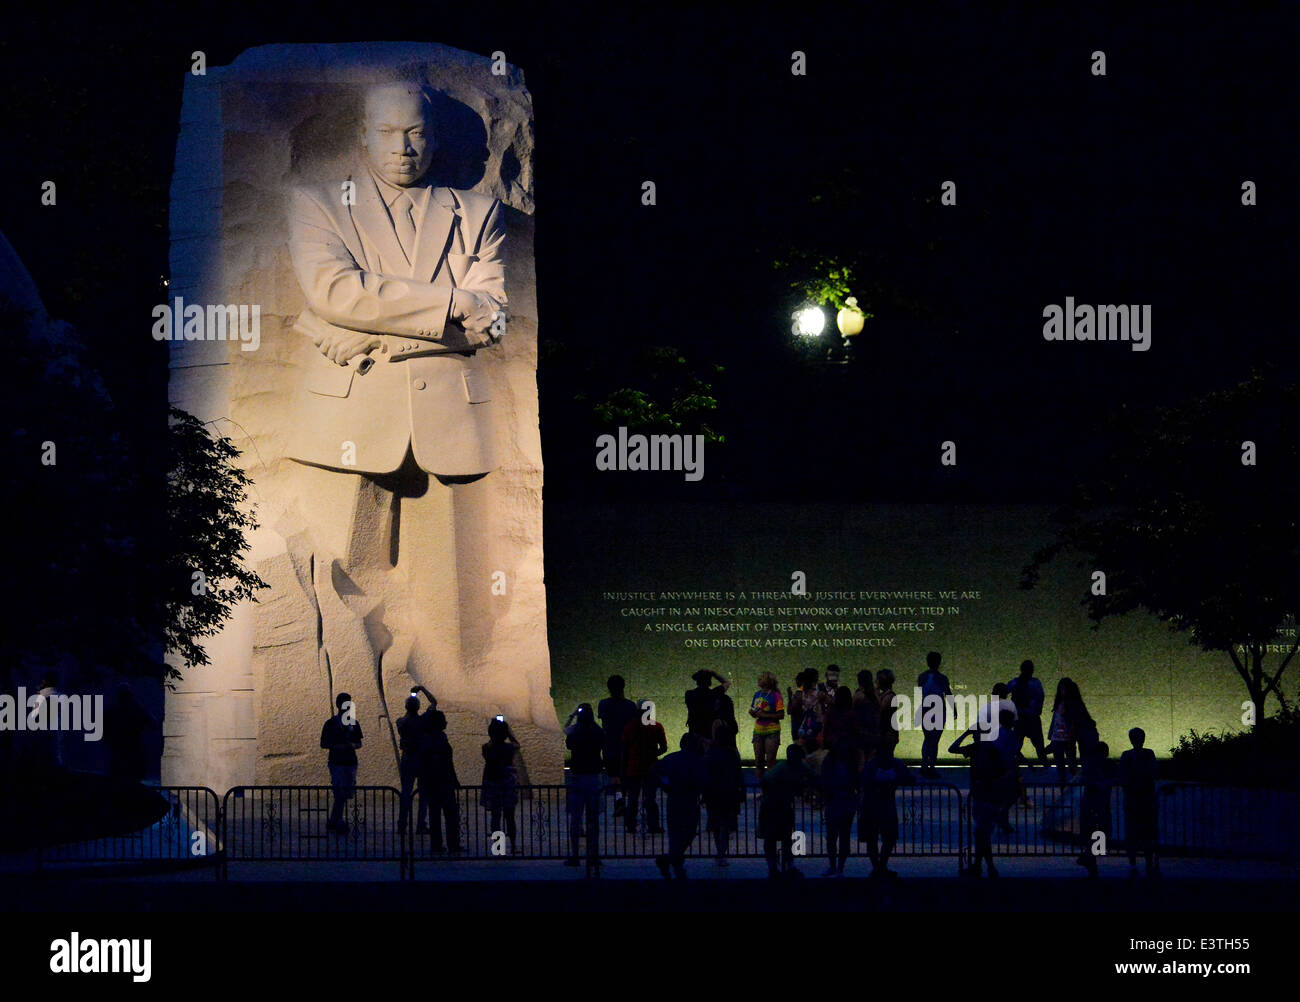 Tourists gather at night to visit the Martin Luther King Jr. Memorial June 18, 2014 in Washington, D.C. Stock Photo